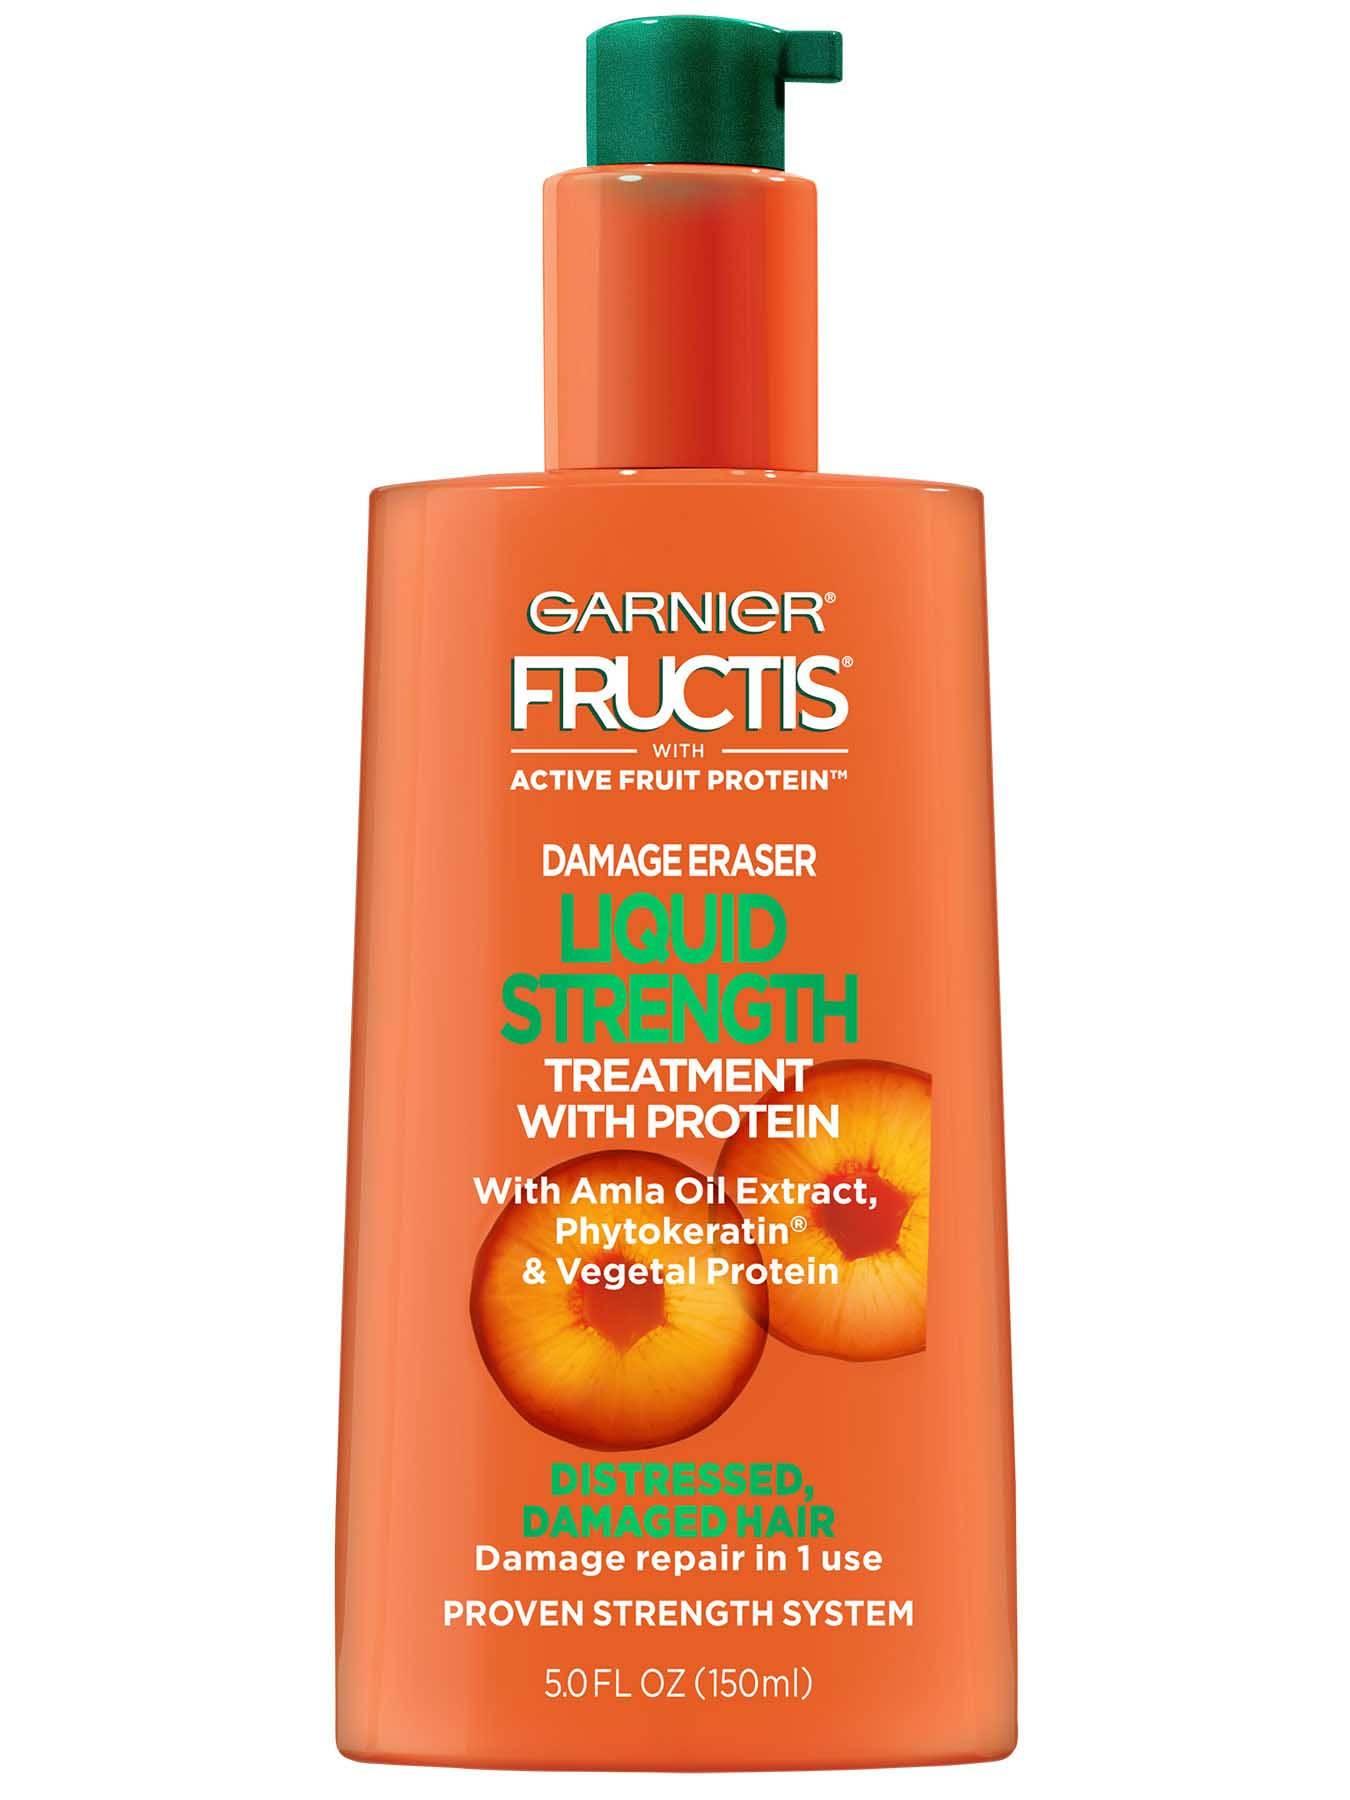 Garnier Fructis Damage Eraser Liquid Strength Treatment With Protein Front Of Bottle